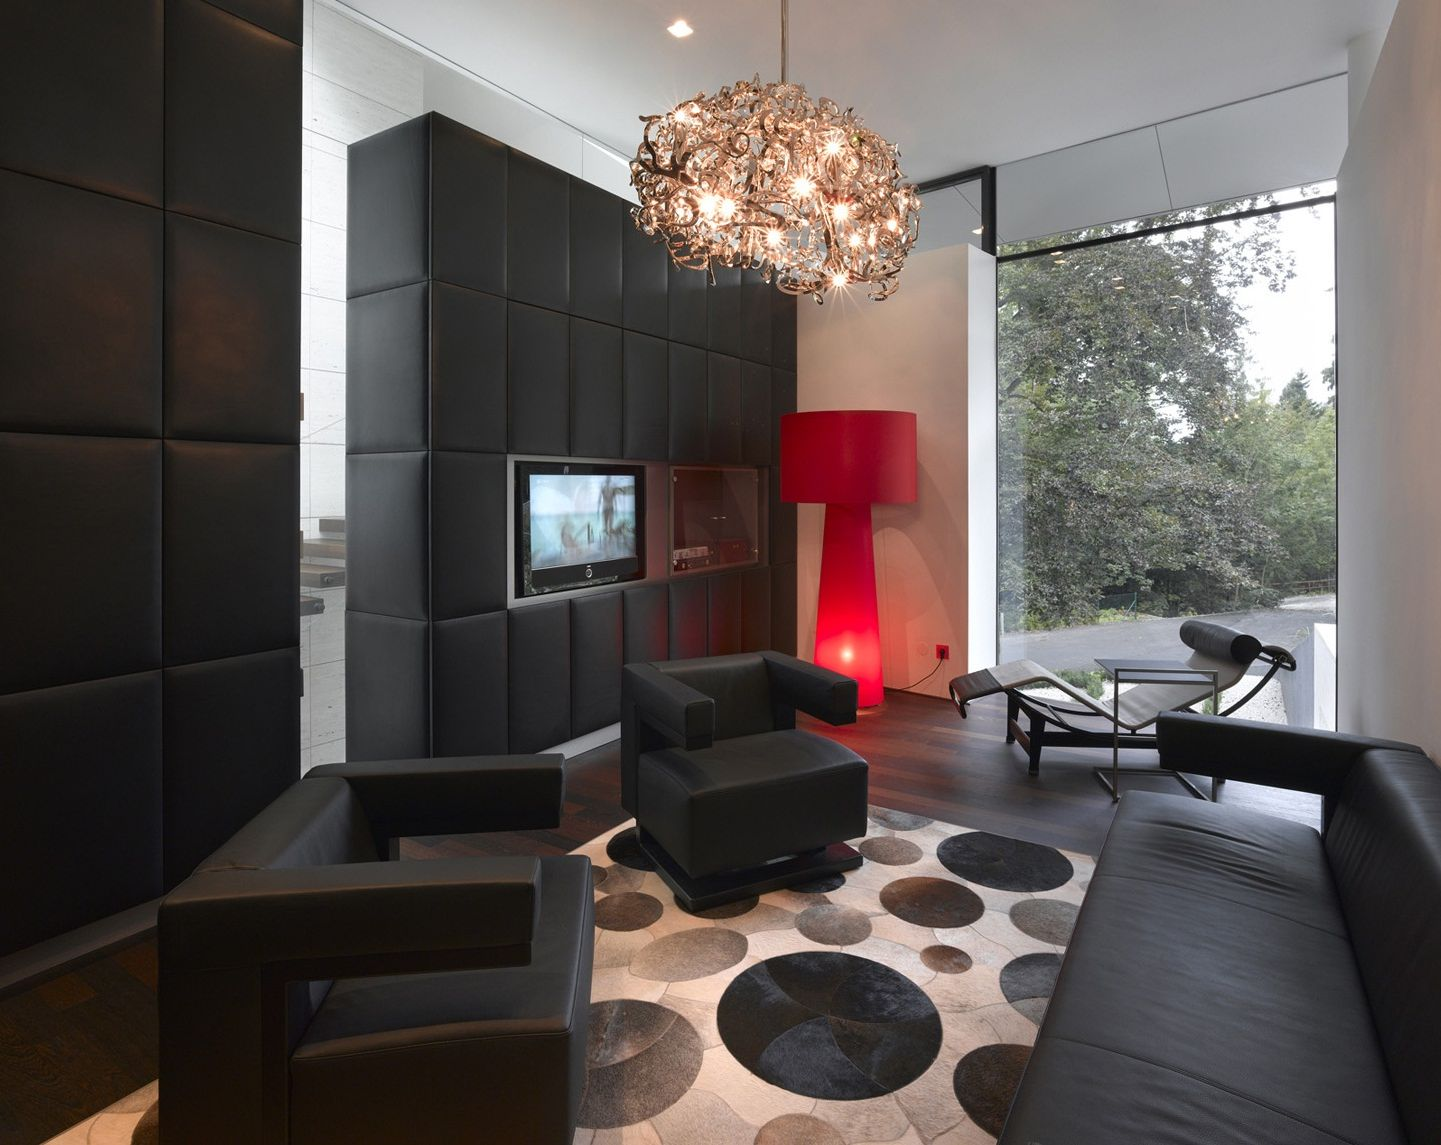 Living Room With Dark Wood Floors And Furniture Crystal Light Chandelier